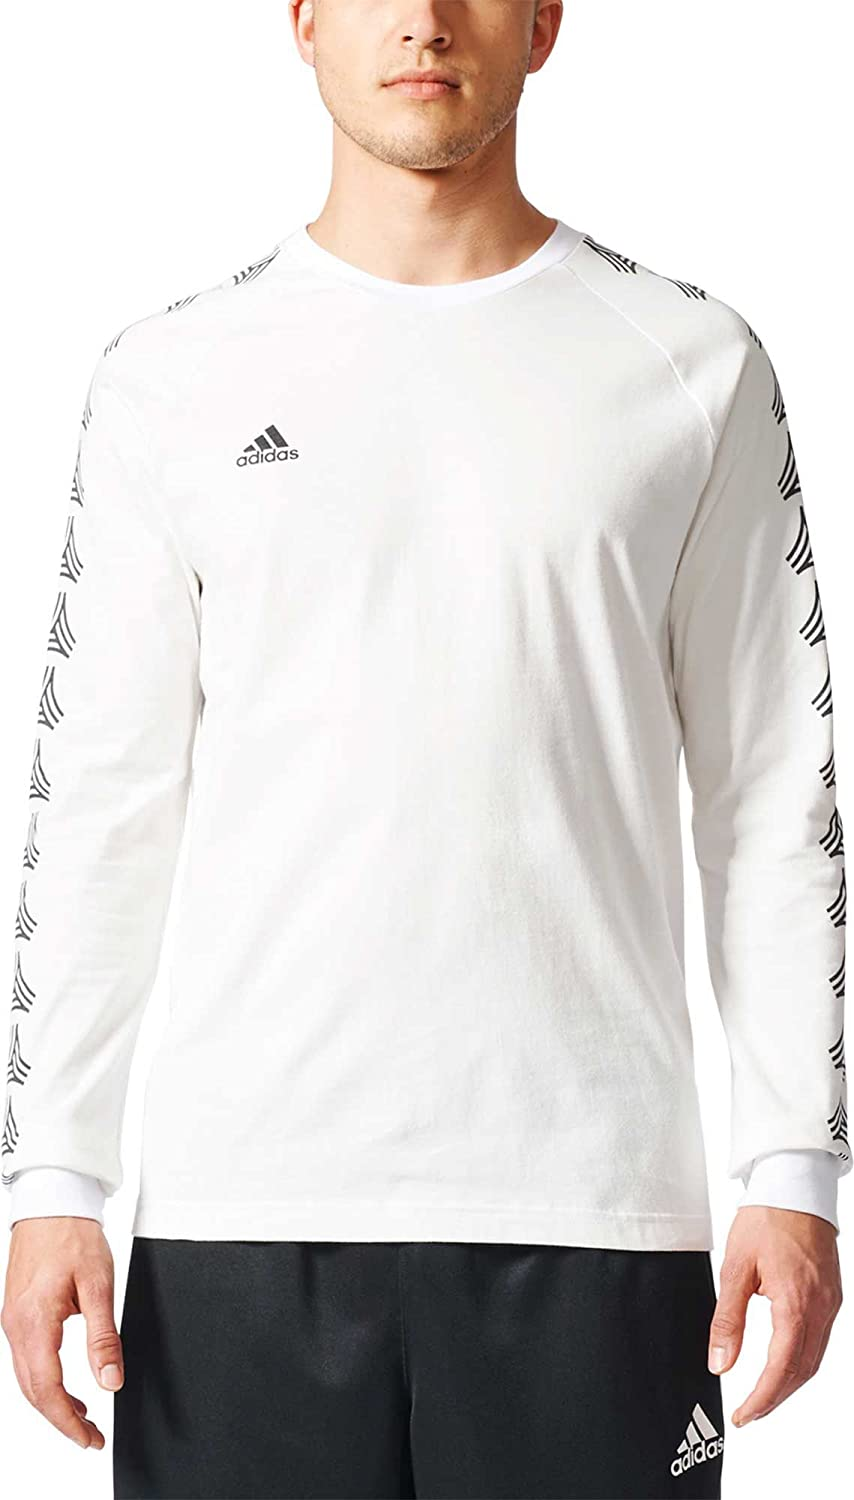 21a2b281 Adidas Men's Tango Cage Long Sleeve T-Shirt (White, XL): Amazon.co.uk:  Sports & Outdoors